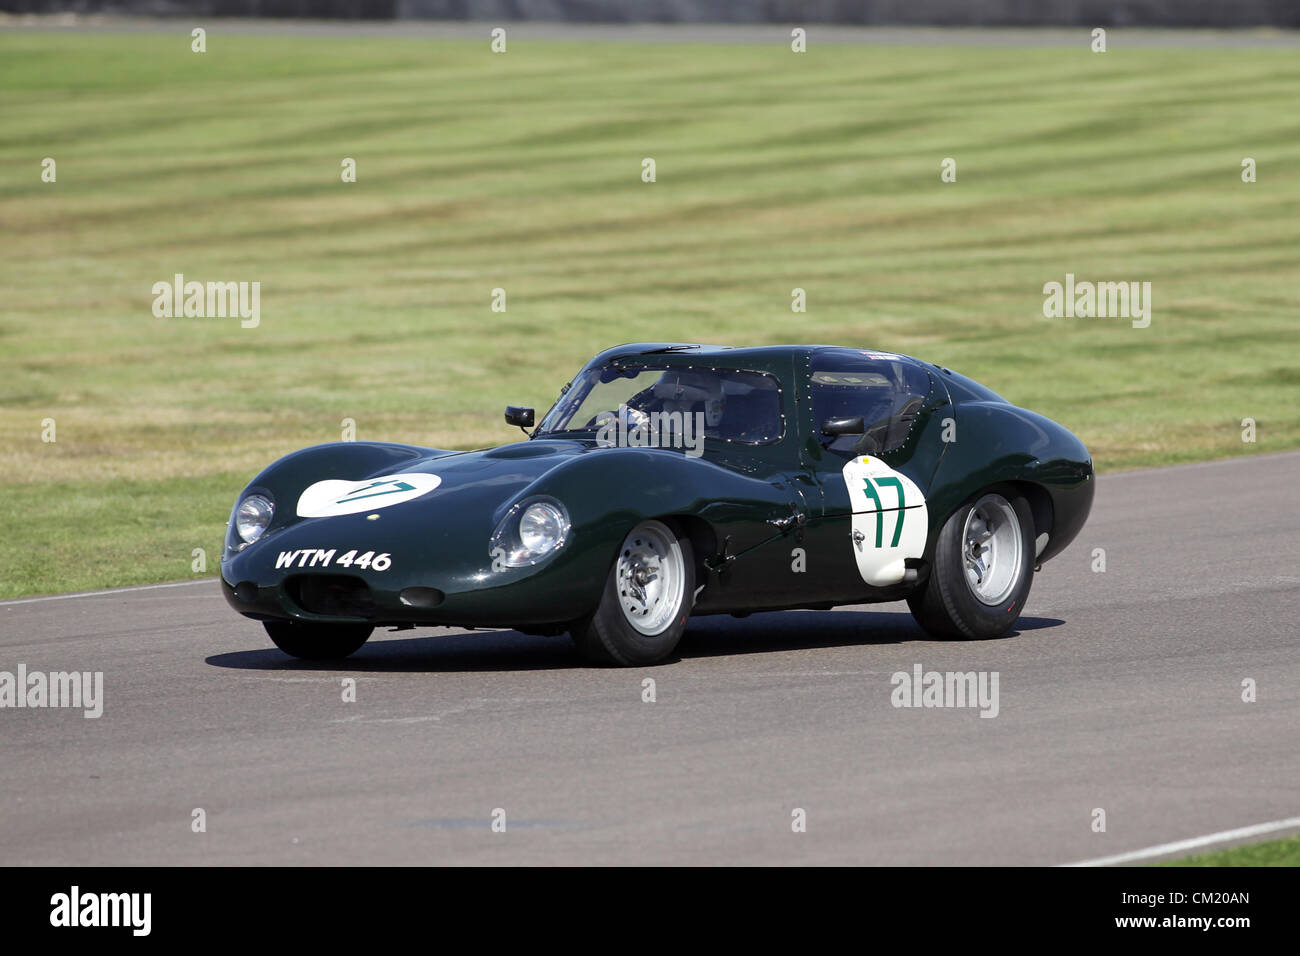 Goodwood Estate, Chichester, UK. 15th September 2012. Richard Attwood driving a 1963 Lister Jaguar coupe during - Stock Image